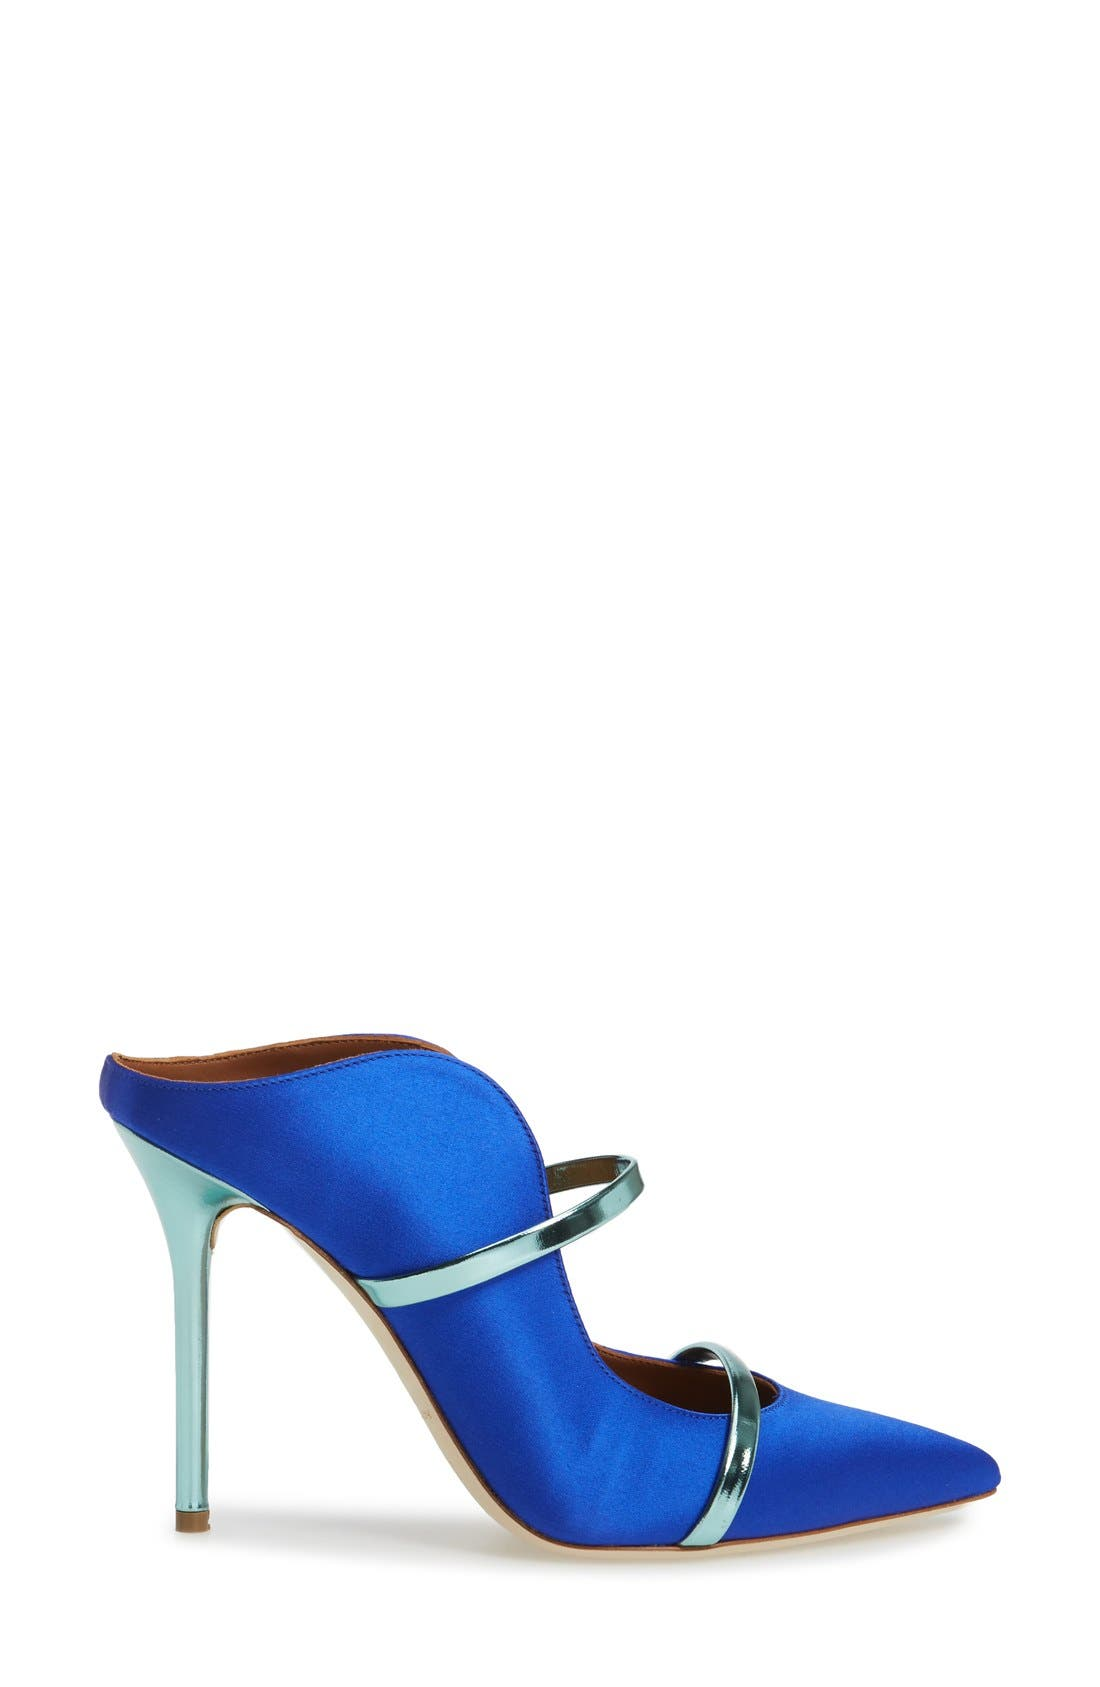 'Maureen' Pointy Toe Mule,                             Alternate thumbnail 4, color,                             Blue Satin